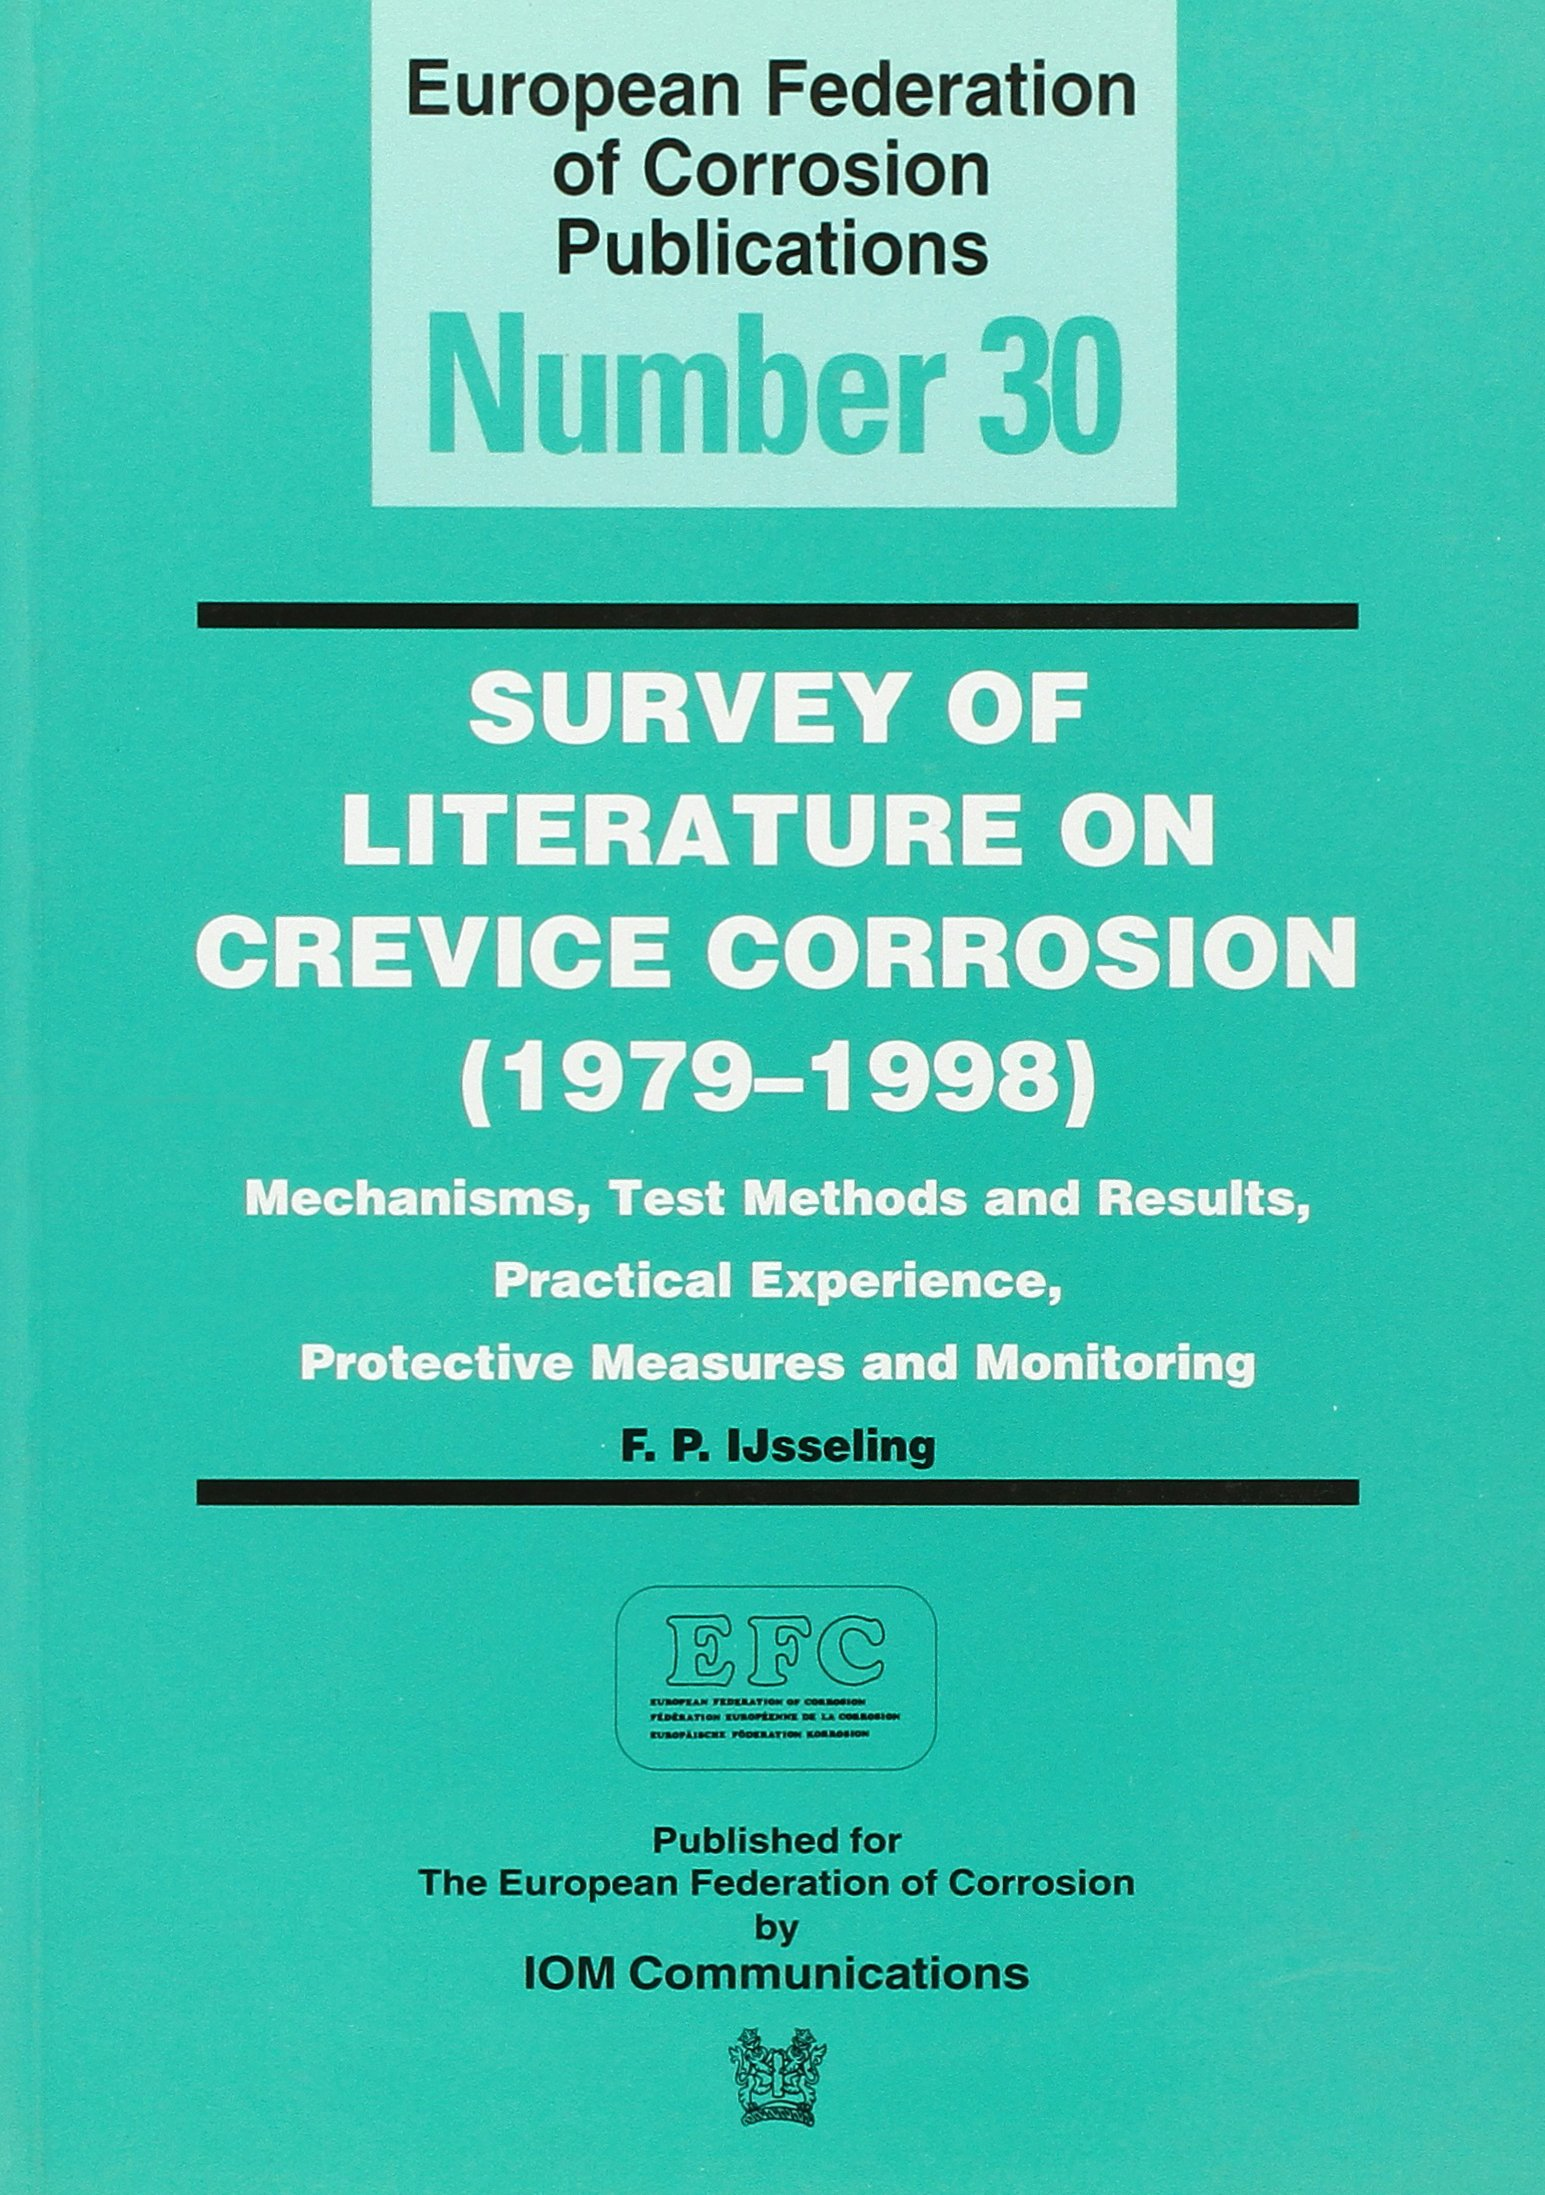 Download Survey of Literature on Crevice Corrosion (1979-1998) (EFC 30) PDF